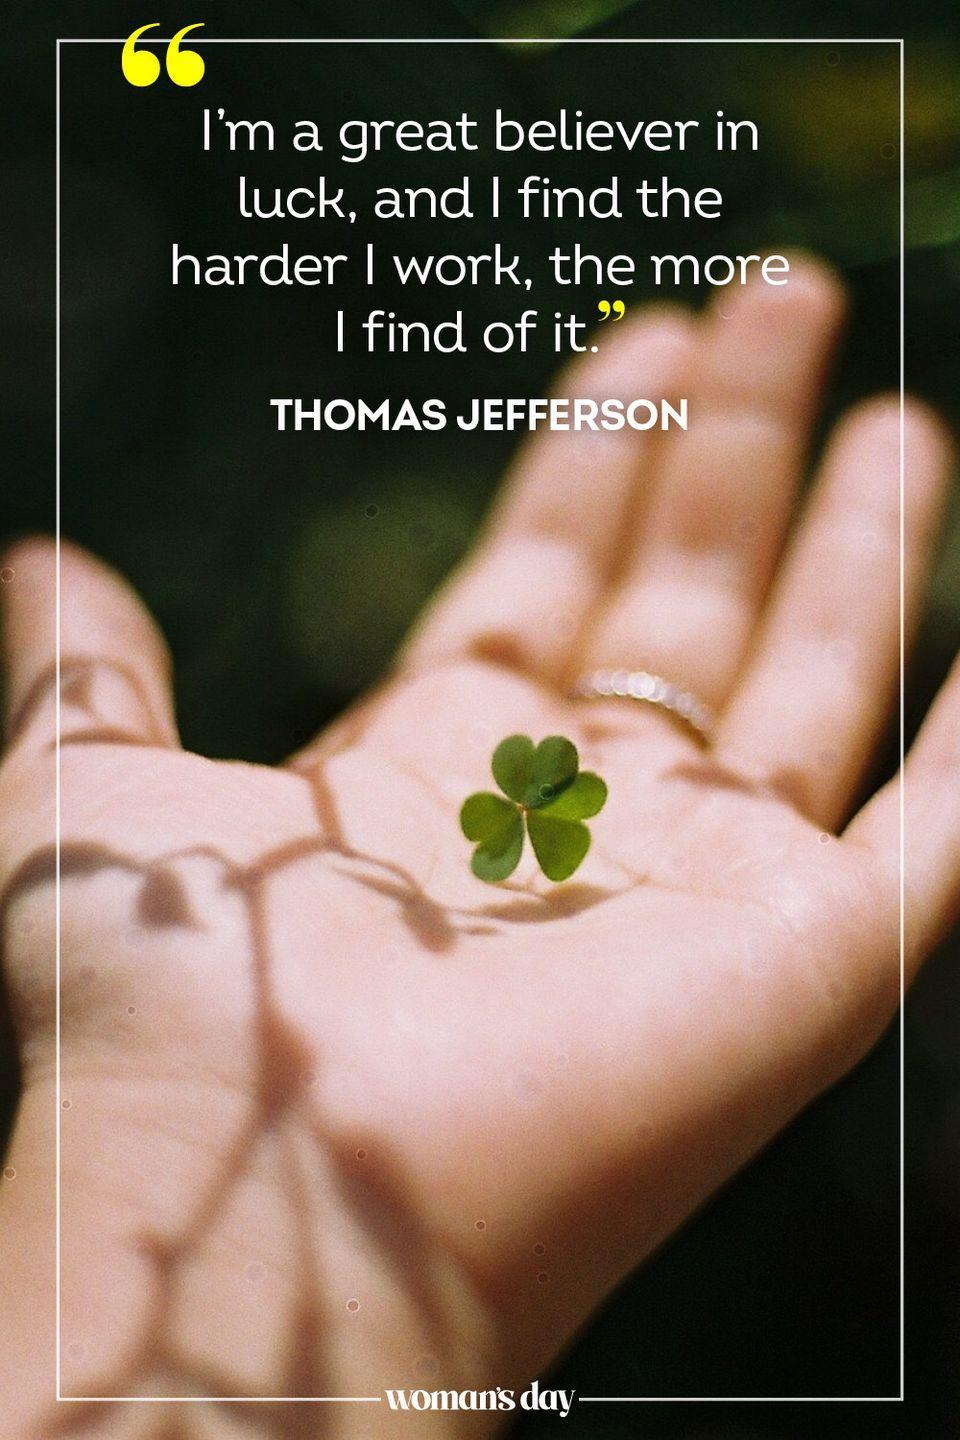 """<p>""""I'm a great believer in luck, and I find the harder I work, the more I find of it."""" — Thomas Jefferson</p>"""